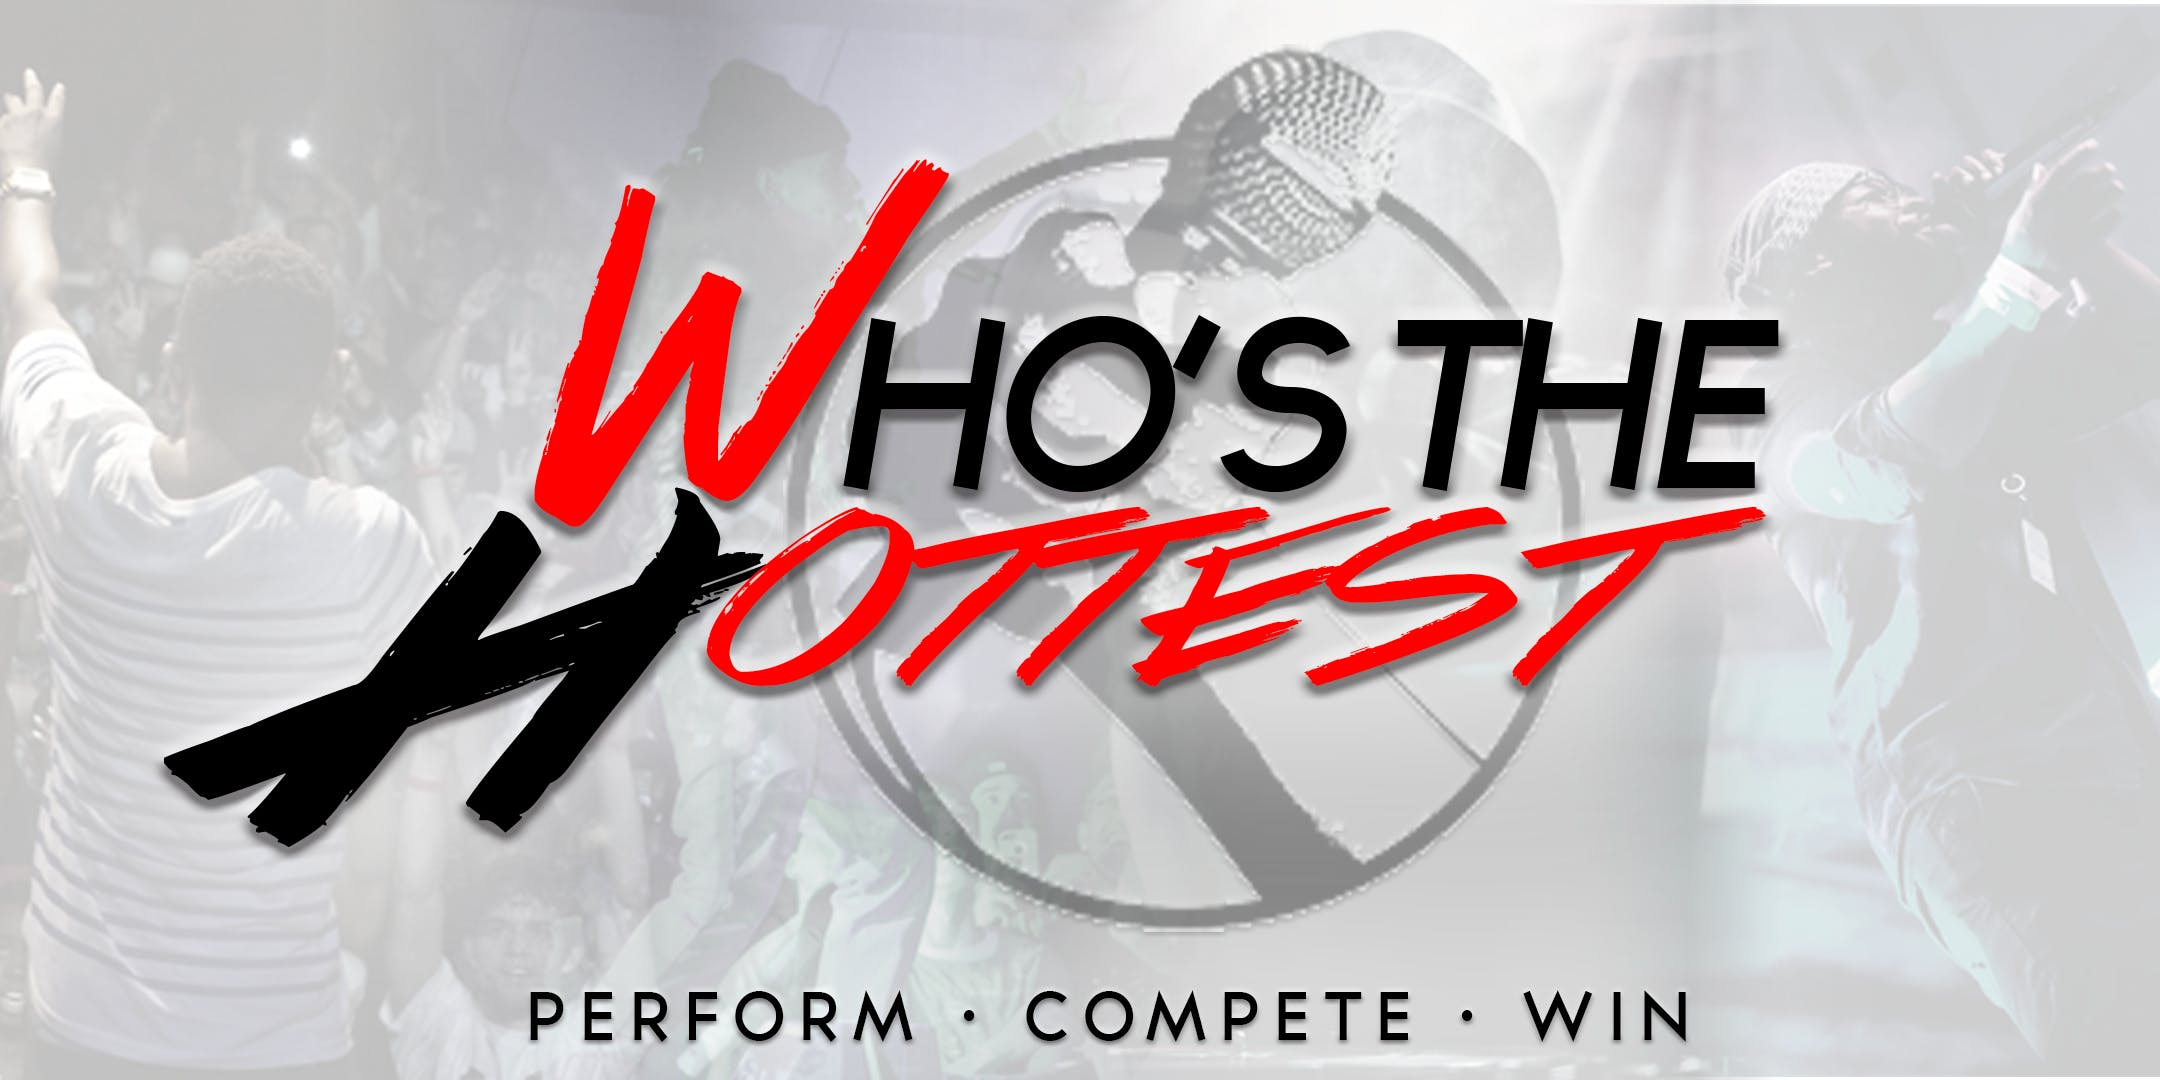 Who's the Hottest – September 6th at The Blooze (Phoenix)